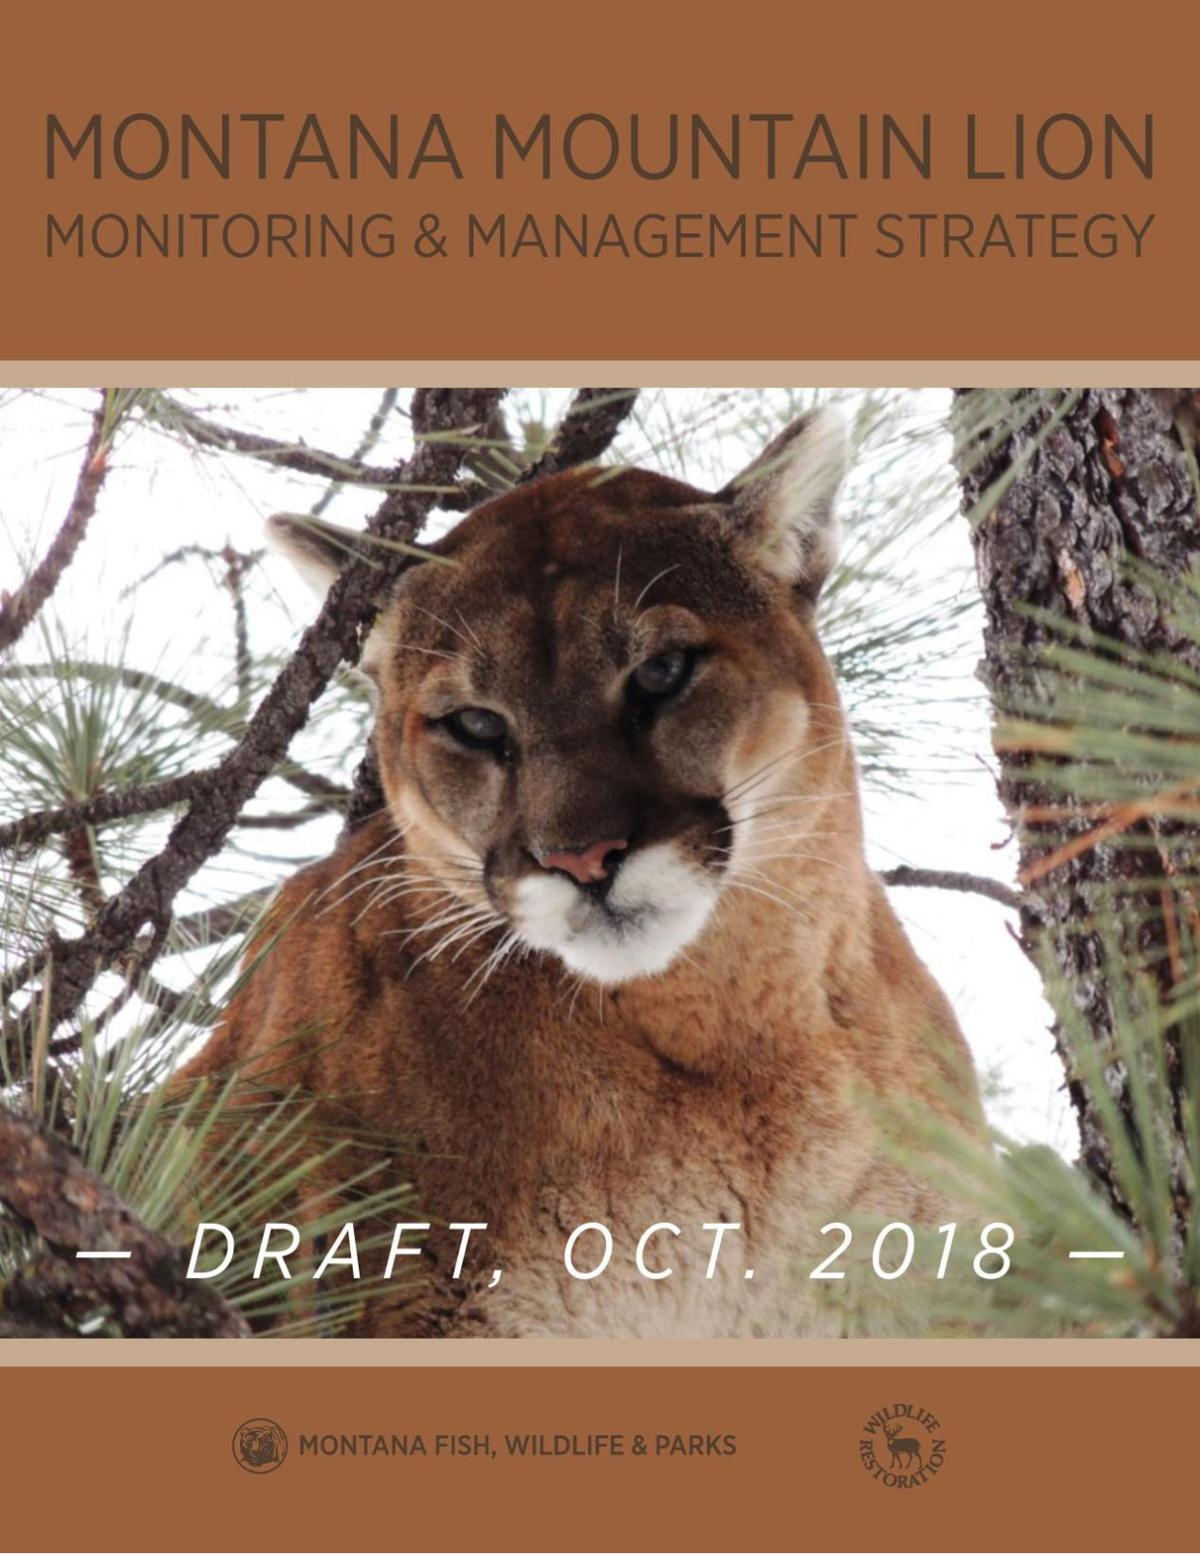 Mountain lion strategy